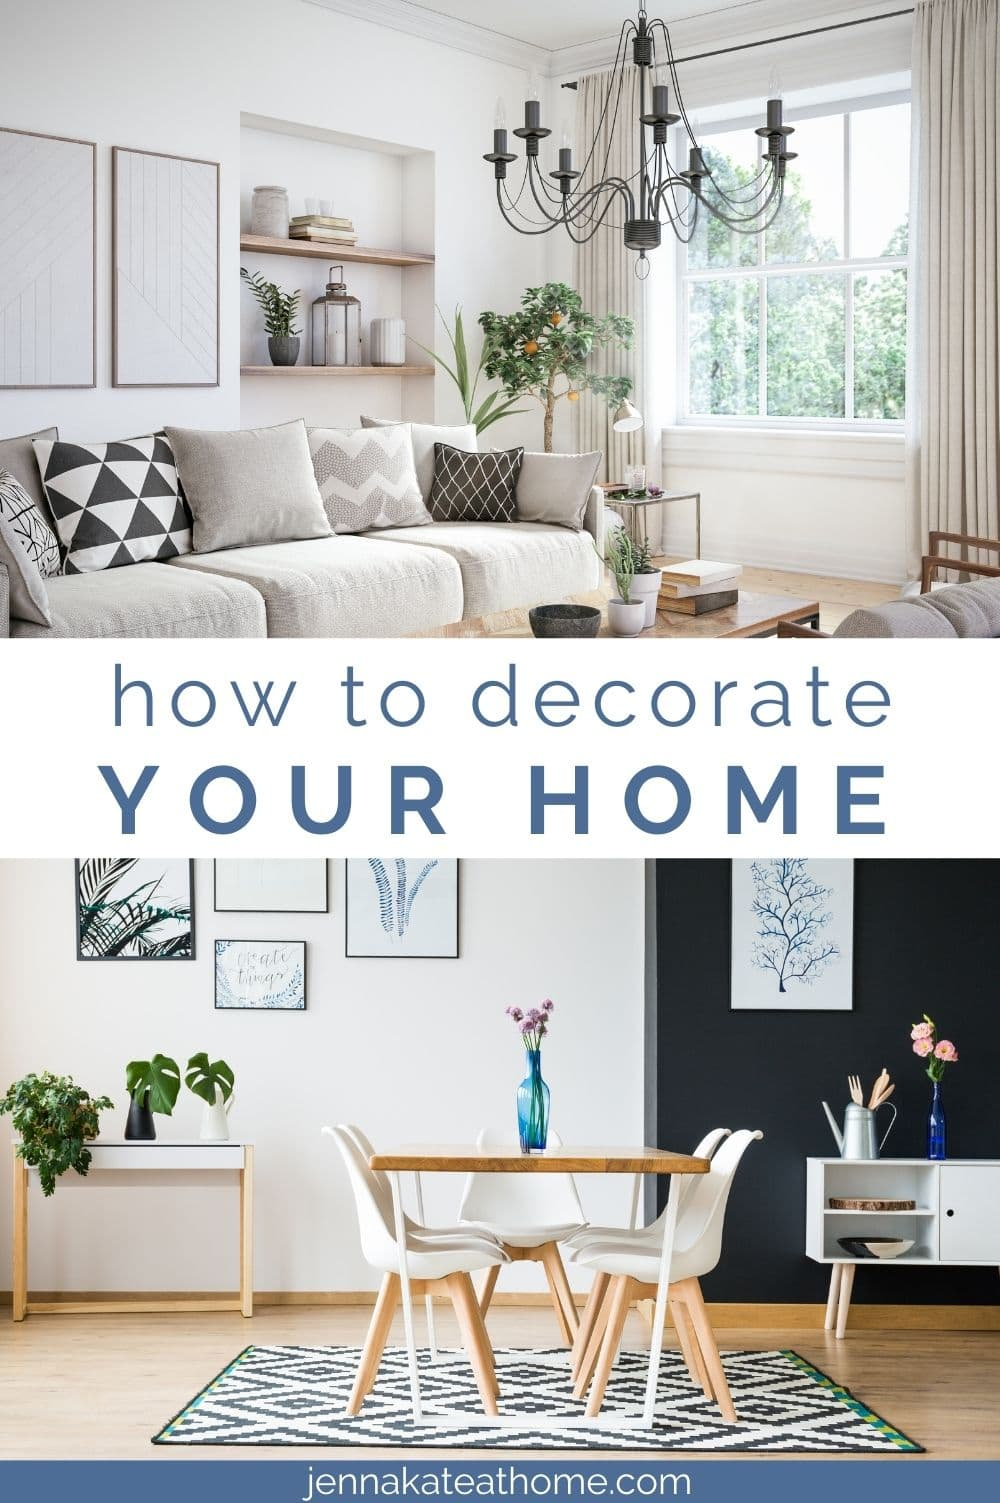 How to decorate your home from scratch